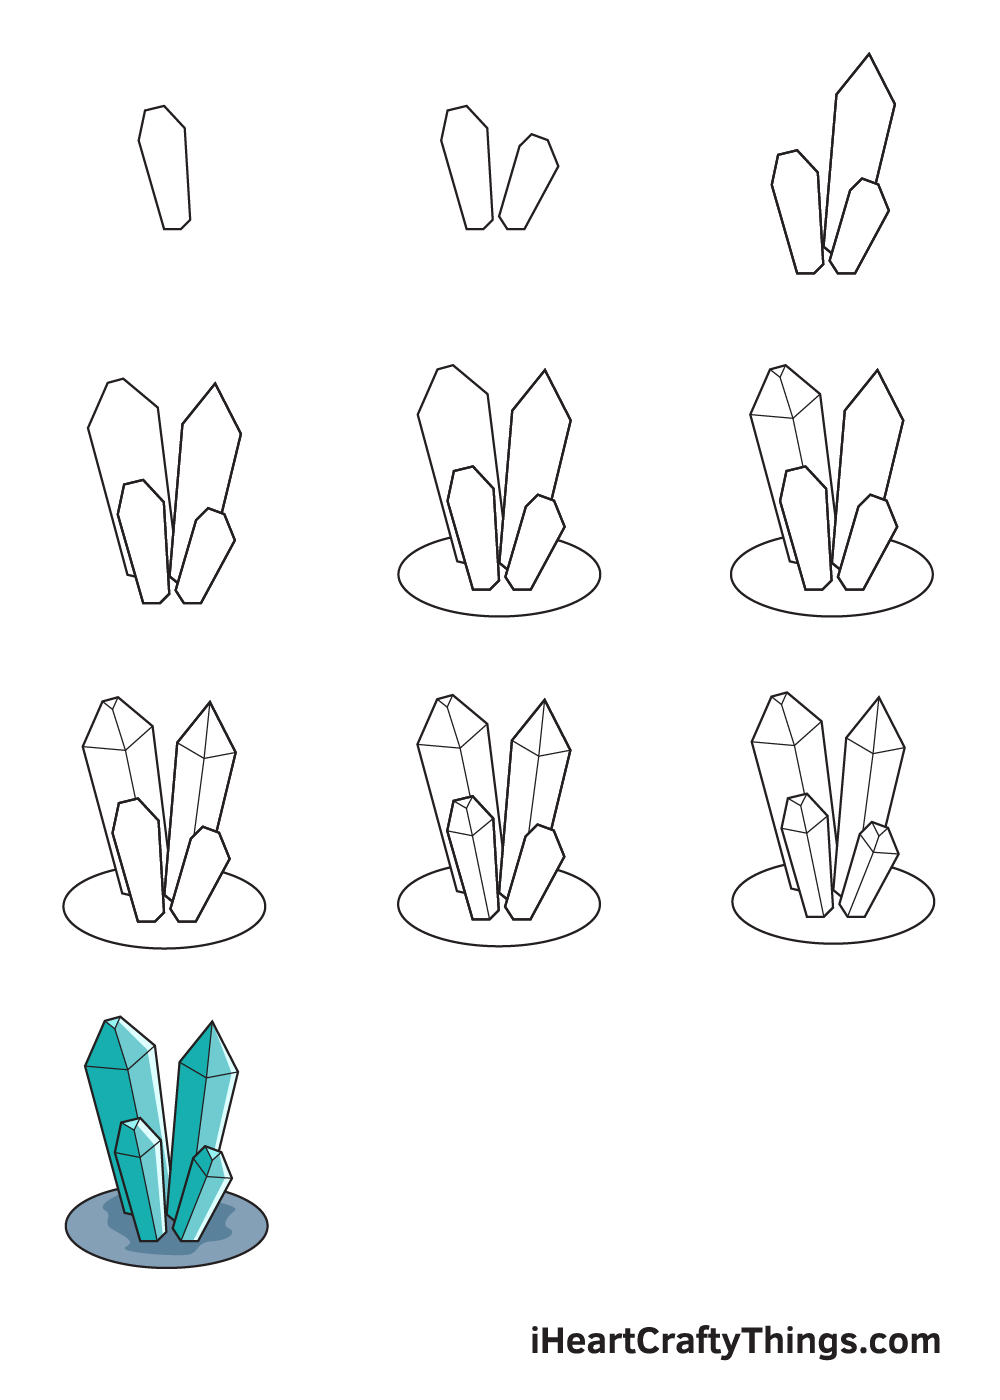 drawing crystals in 9 easy steps